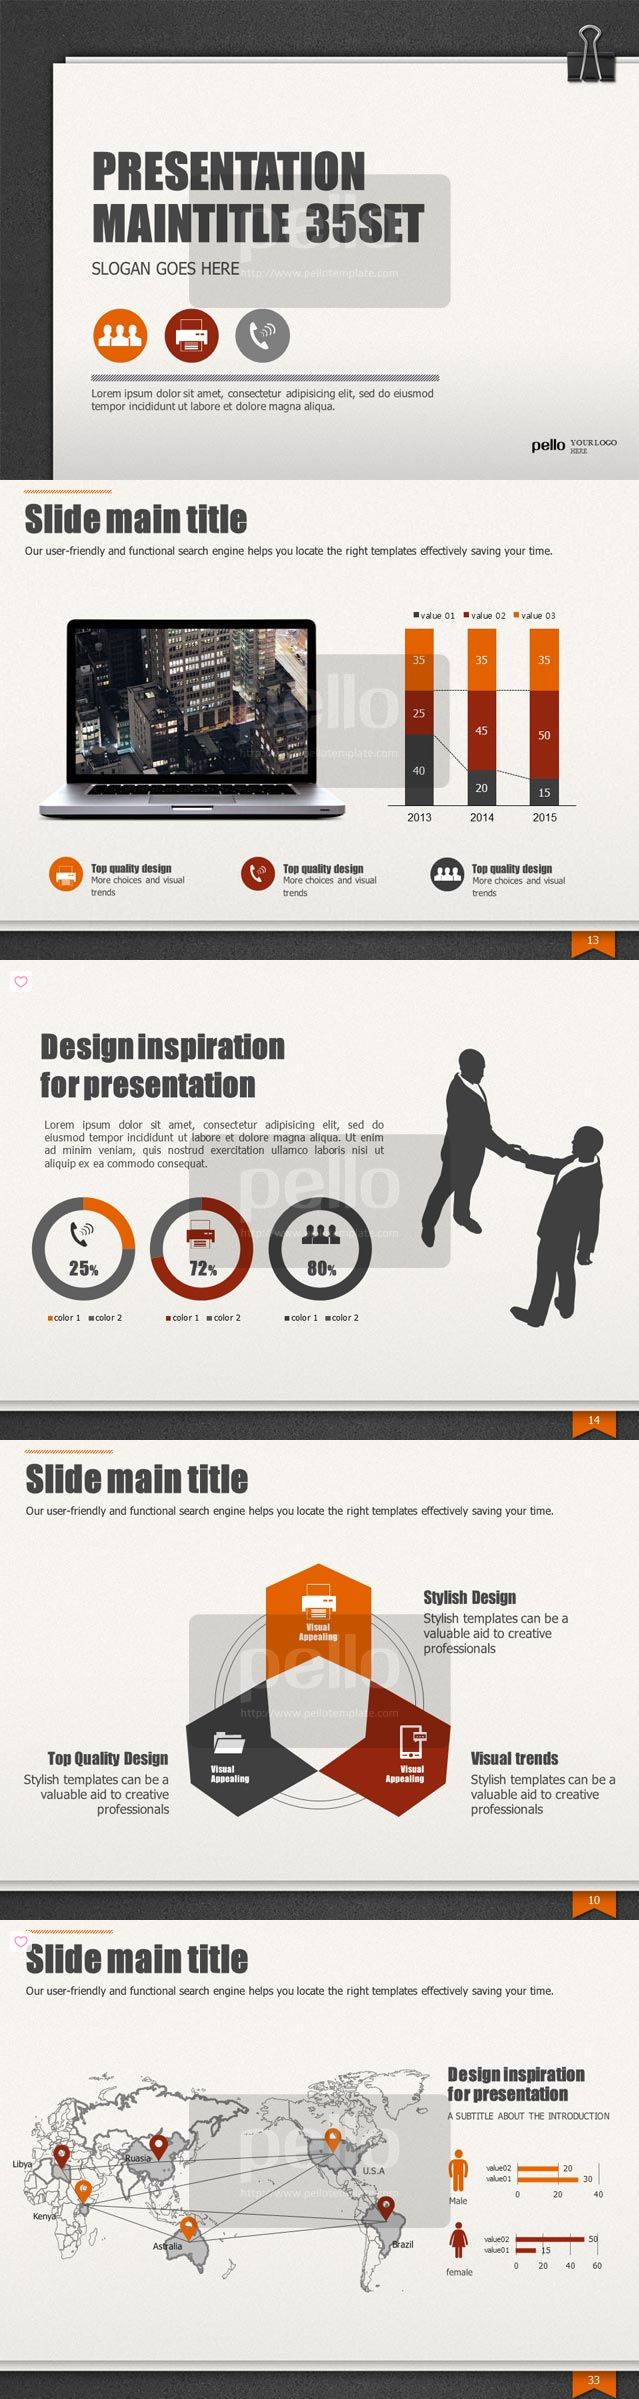 85 best good pello ppt templates images on pinterest ppt good pello introduces a highly versatile powerpoint template design perfect for business and college report presentations features 35 full hd easy to edit toneelgroepblik Gallery